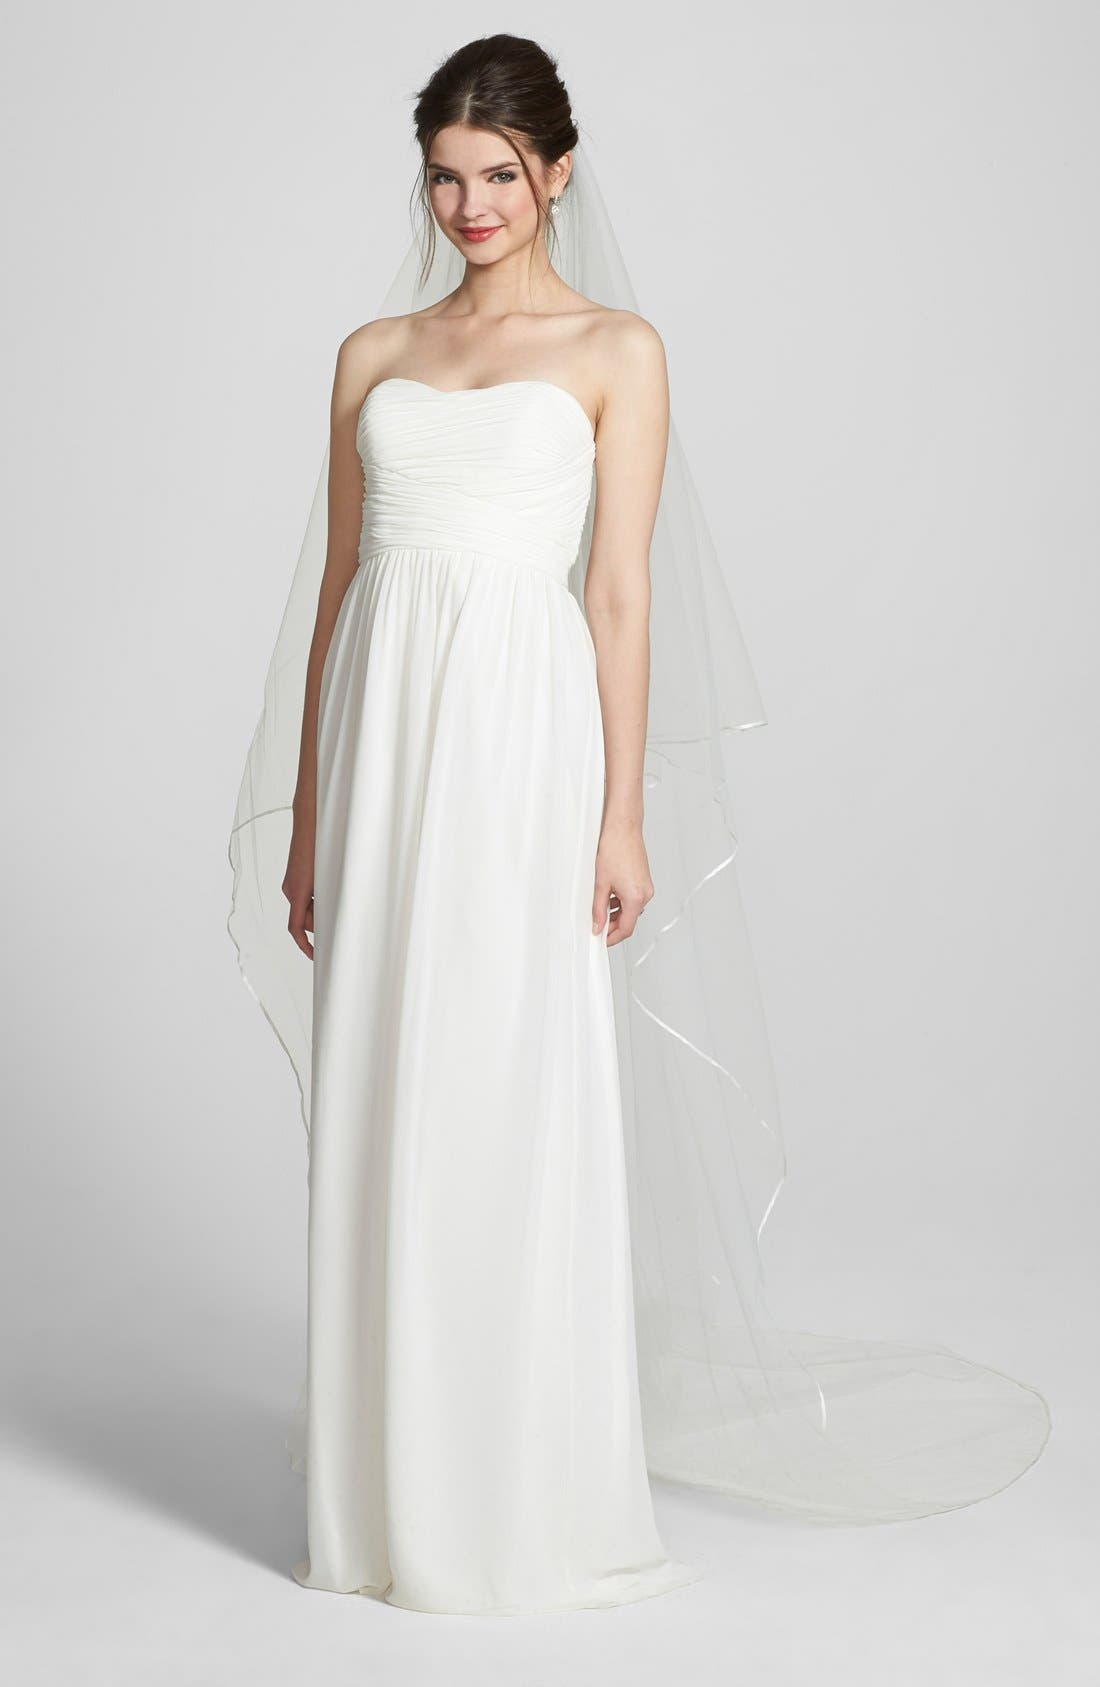 'Mable' Two-Tier Satin Trim Cathedral Veil,                         Main,                         color, WHITE